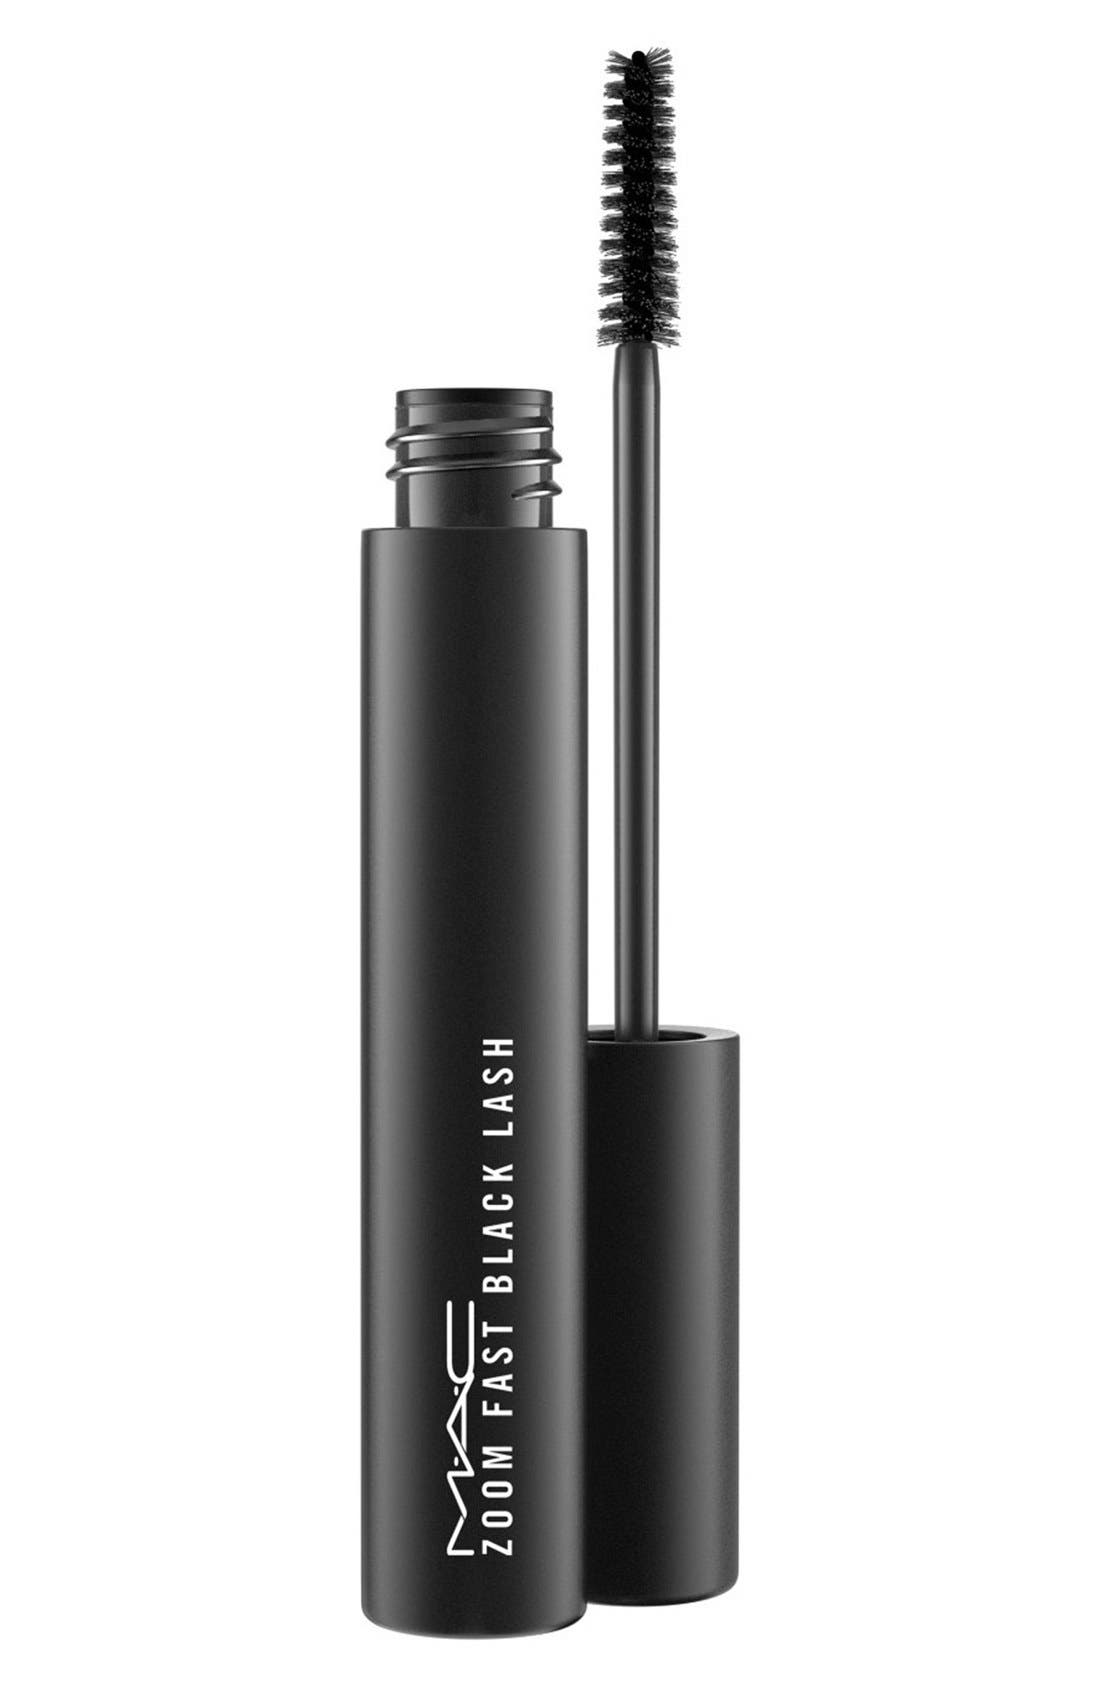 MAC COSMETICS MAC 'Zoom Fast' Black Lash Mascara, Main, color, 000